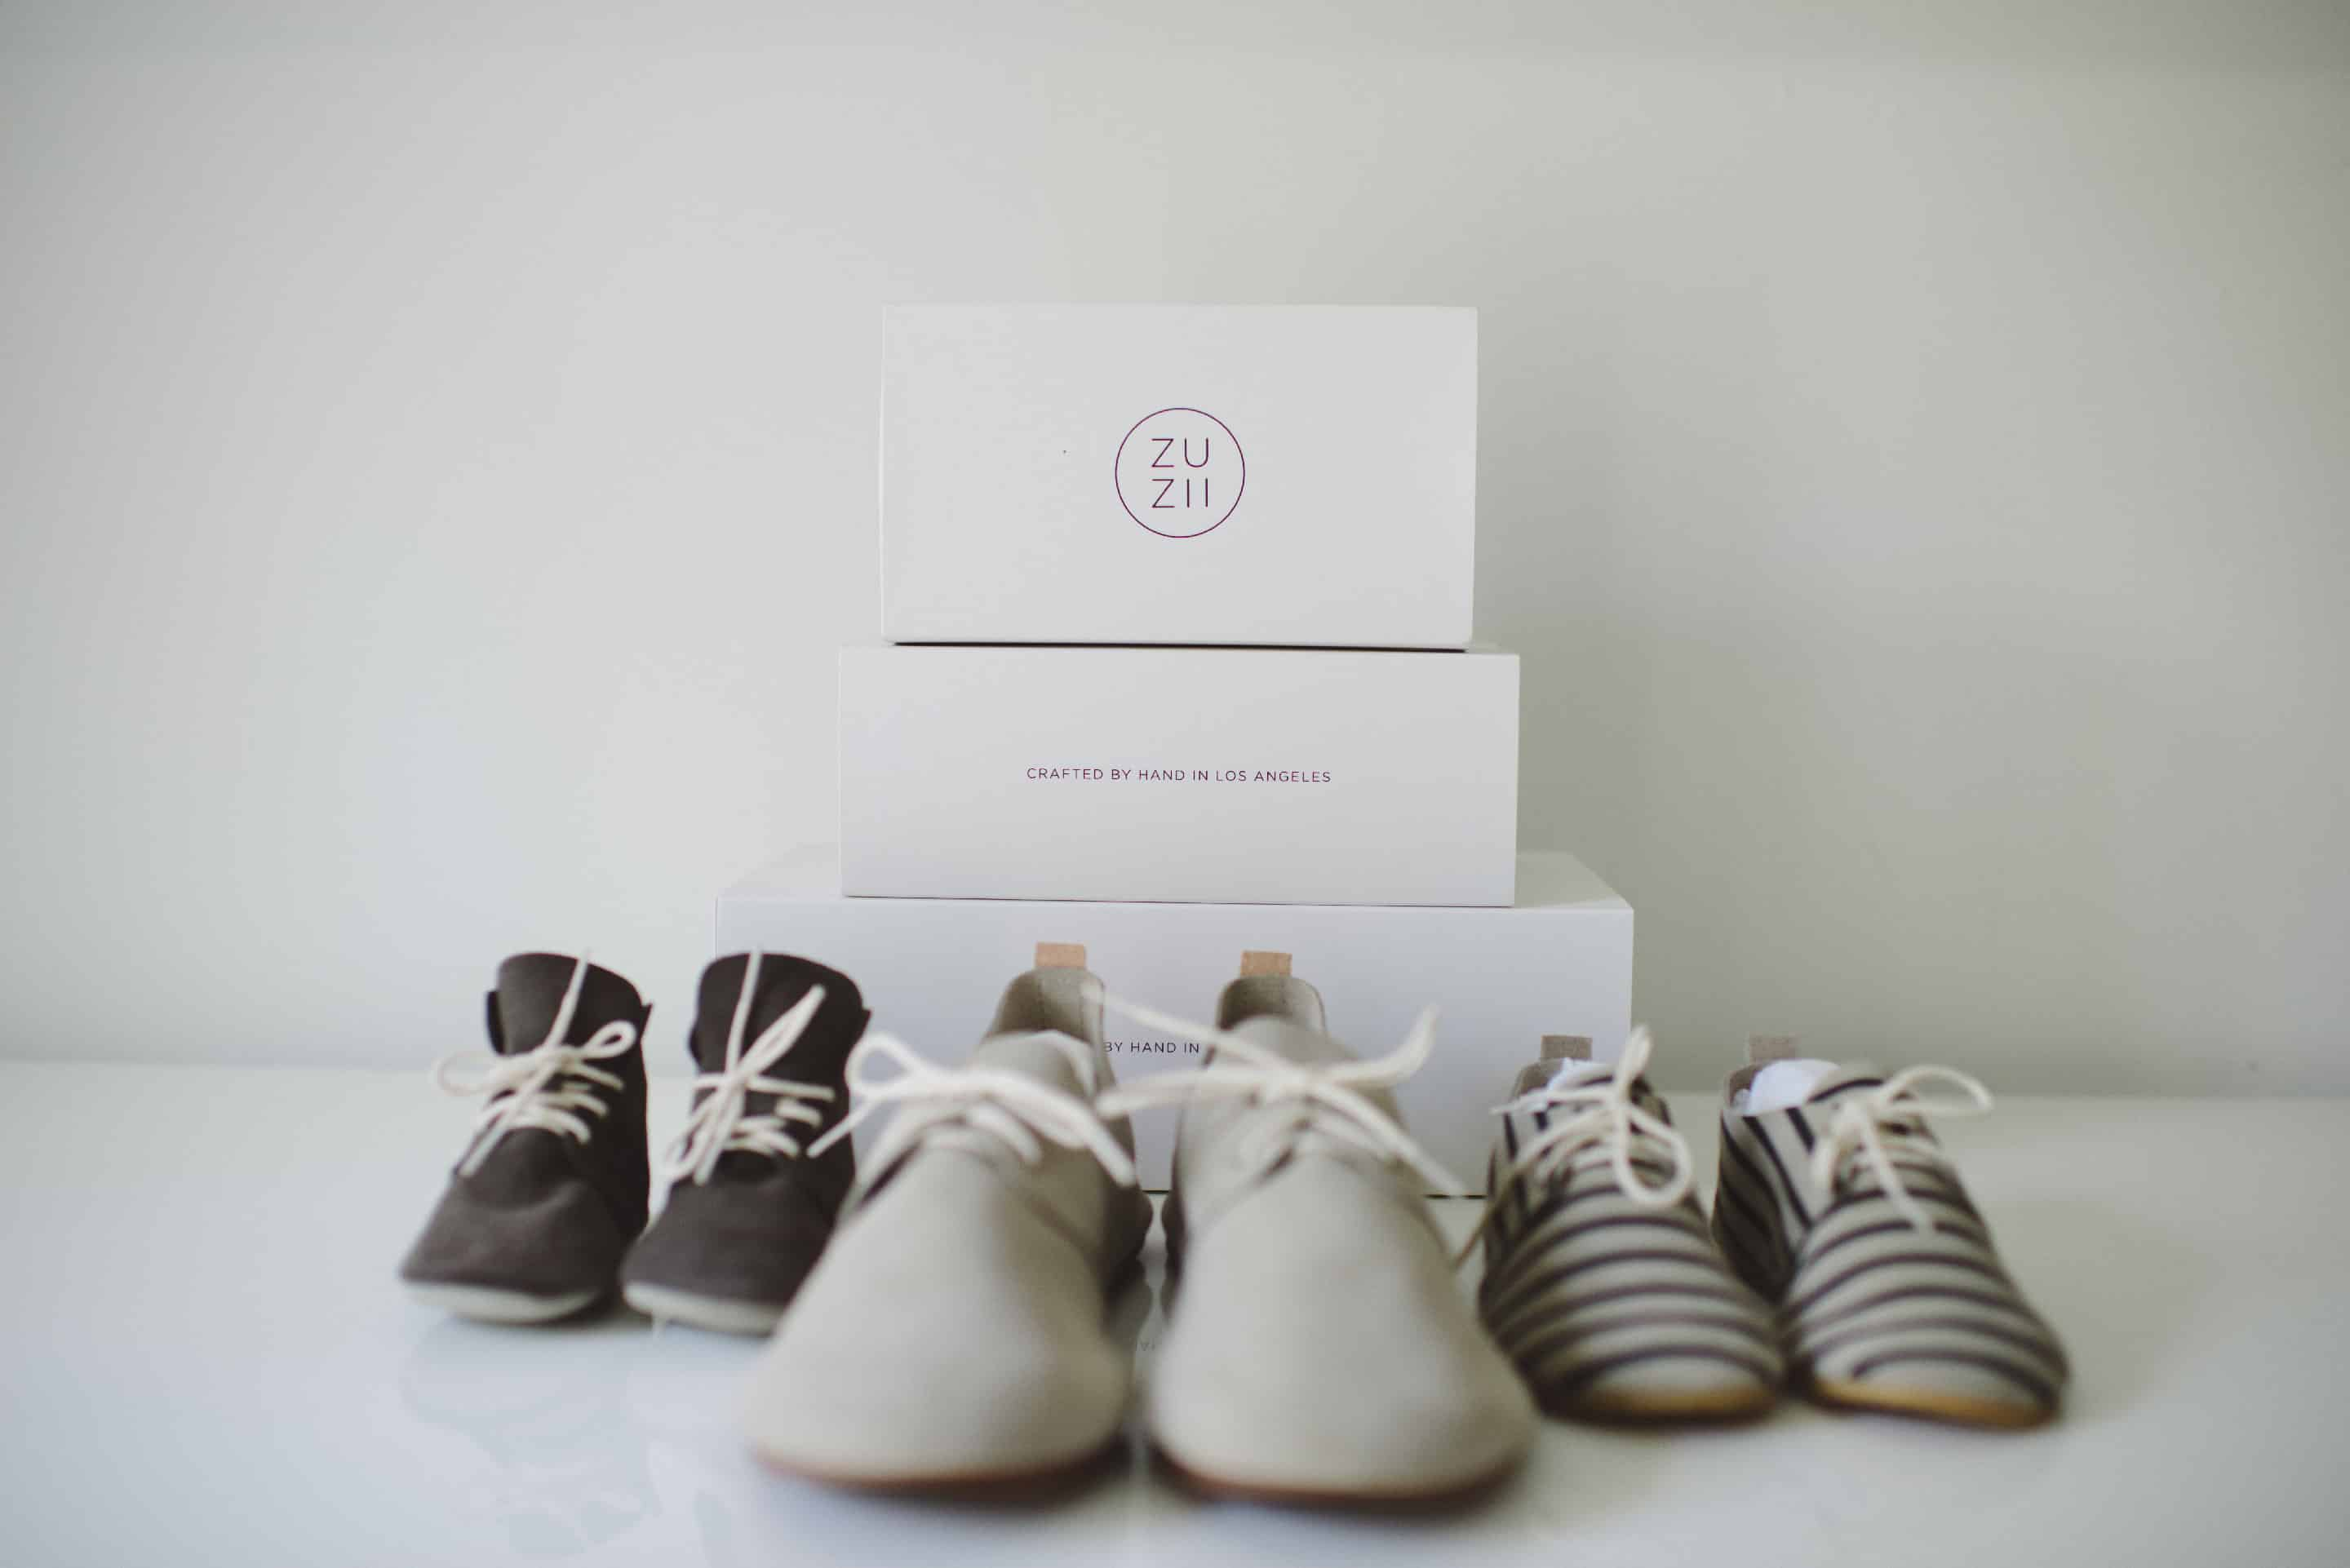 Zuzii Footwear • October Favorite Things by Tiffani Thiessen • Photos by Rebecca Sanabria